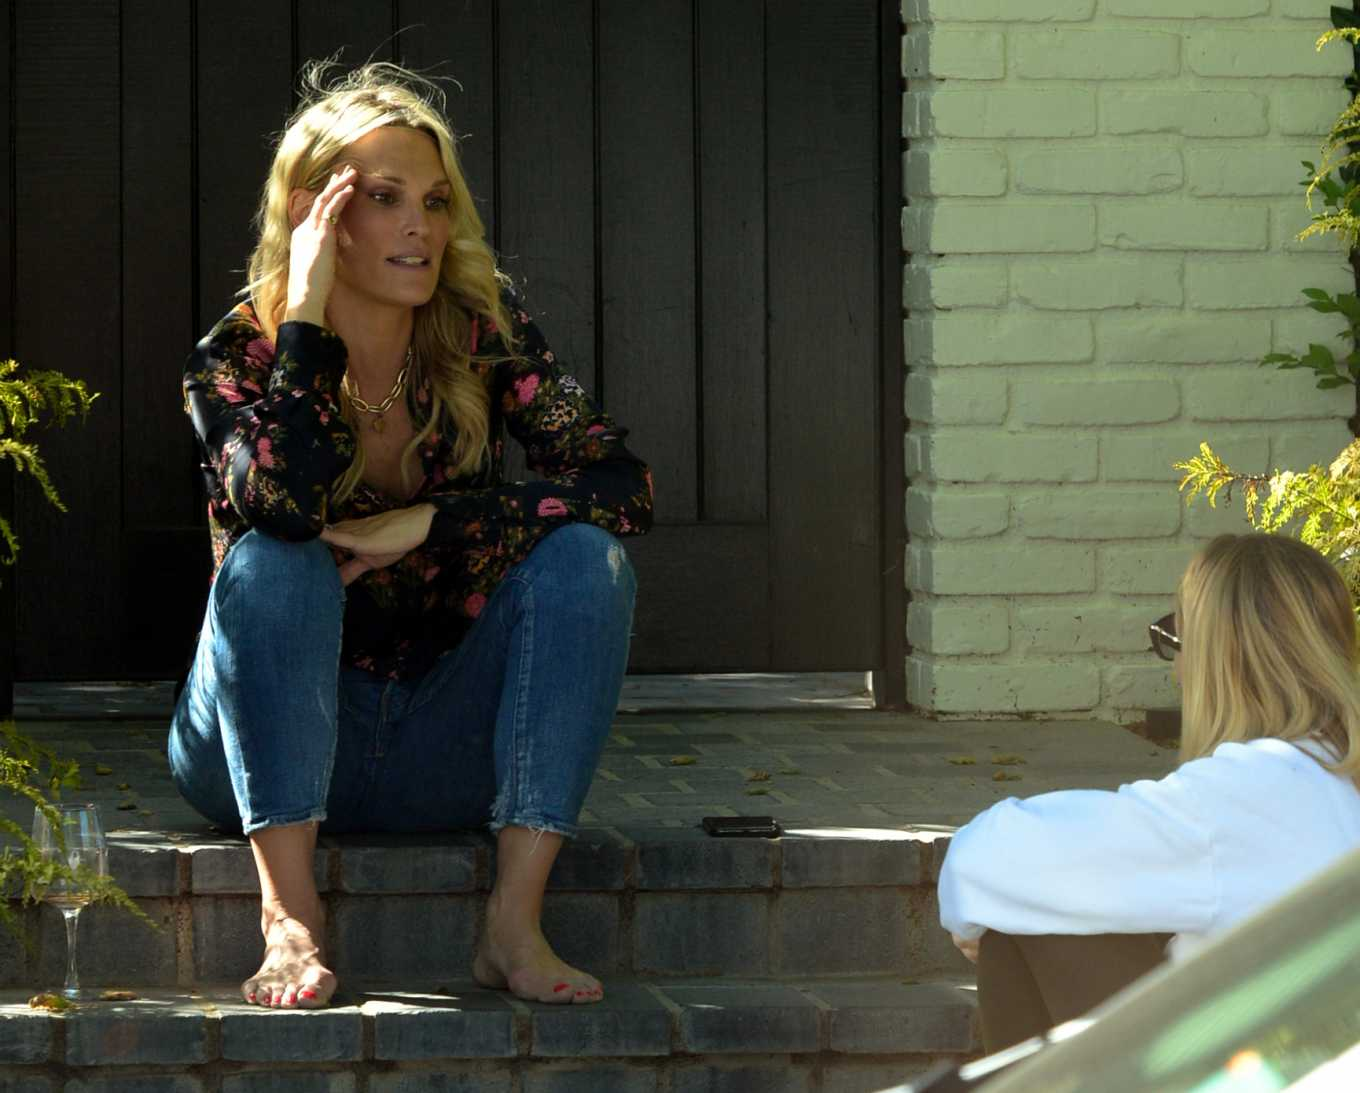 Molly Sims spotted on her doorstep in Pacific Palisades